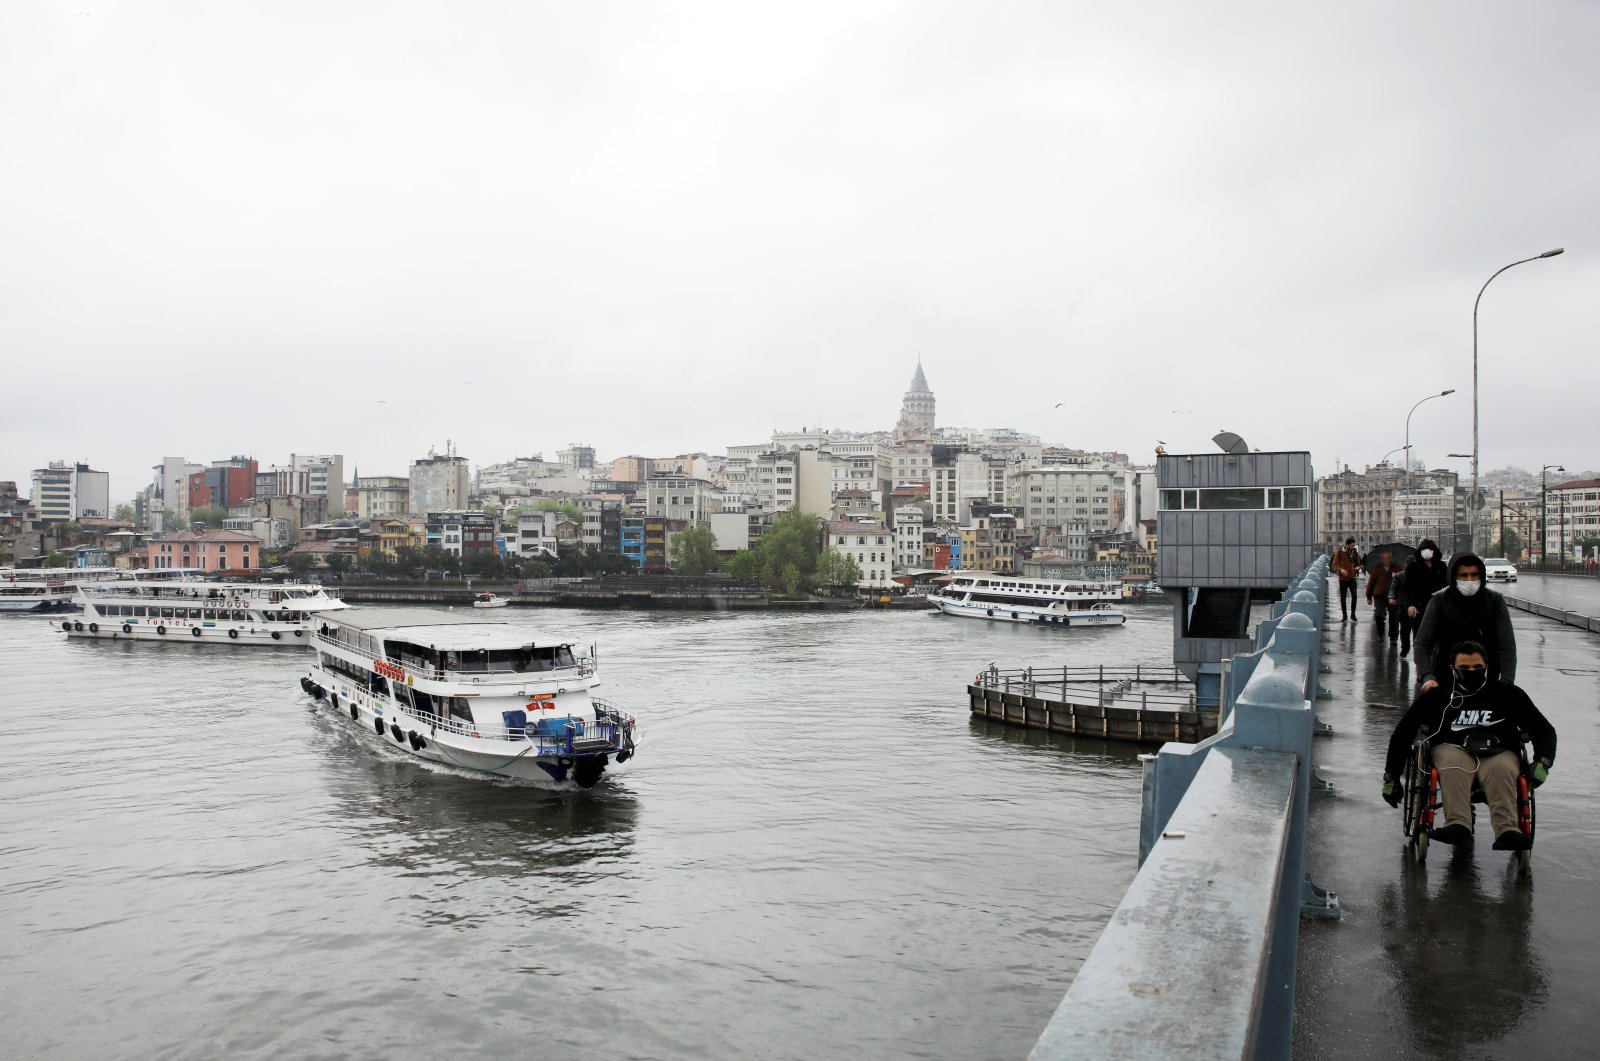 Boats sail along the Golden Horn and people walk on Galata Bridge, amid the coronavirus pandemic, in Istanbul, Turkey, May 4, 2020. (REUTERS Photo)